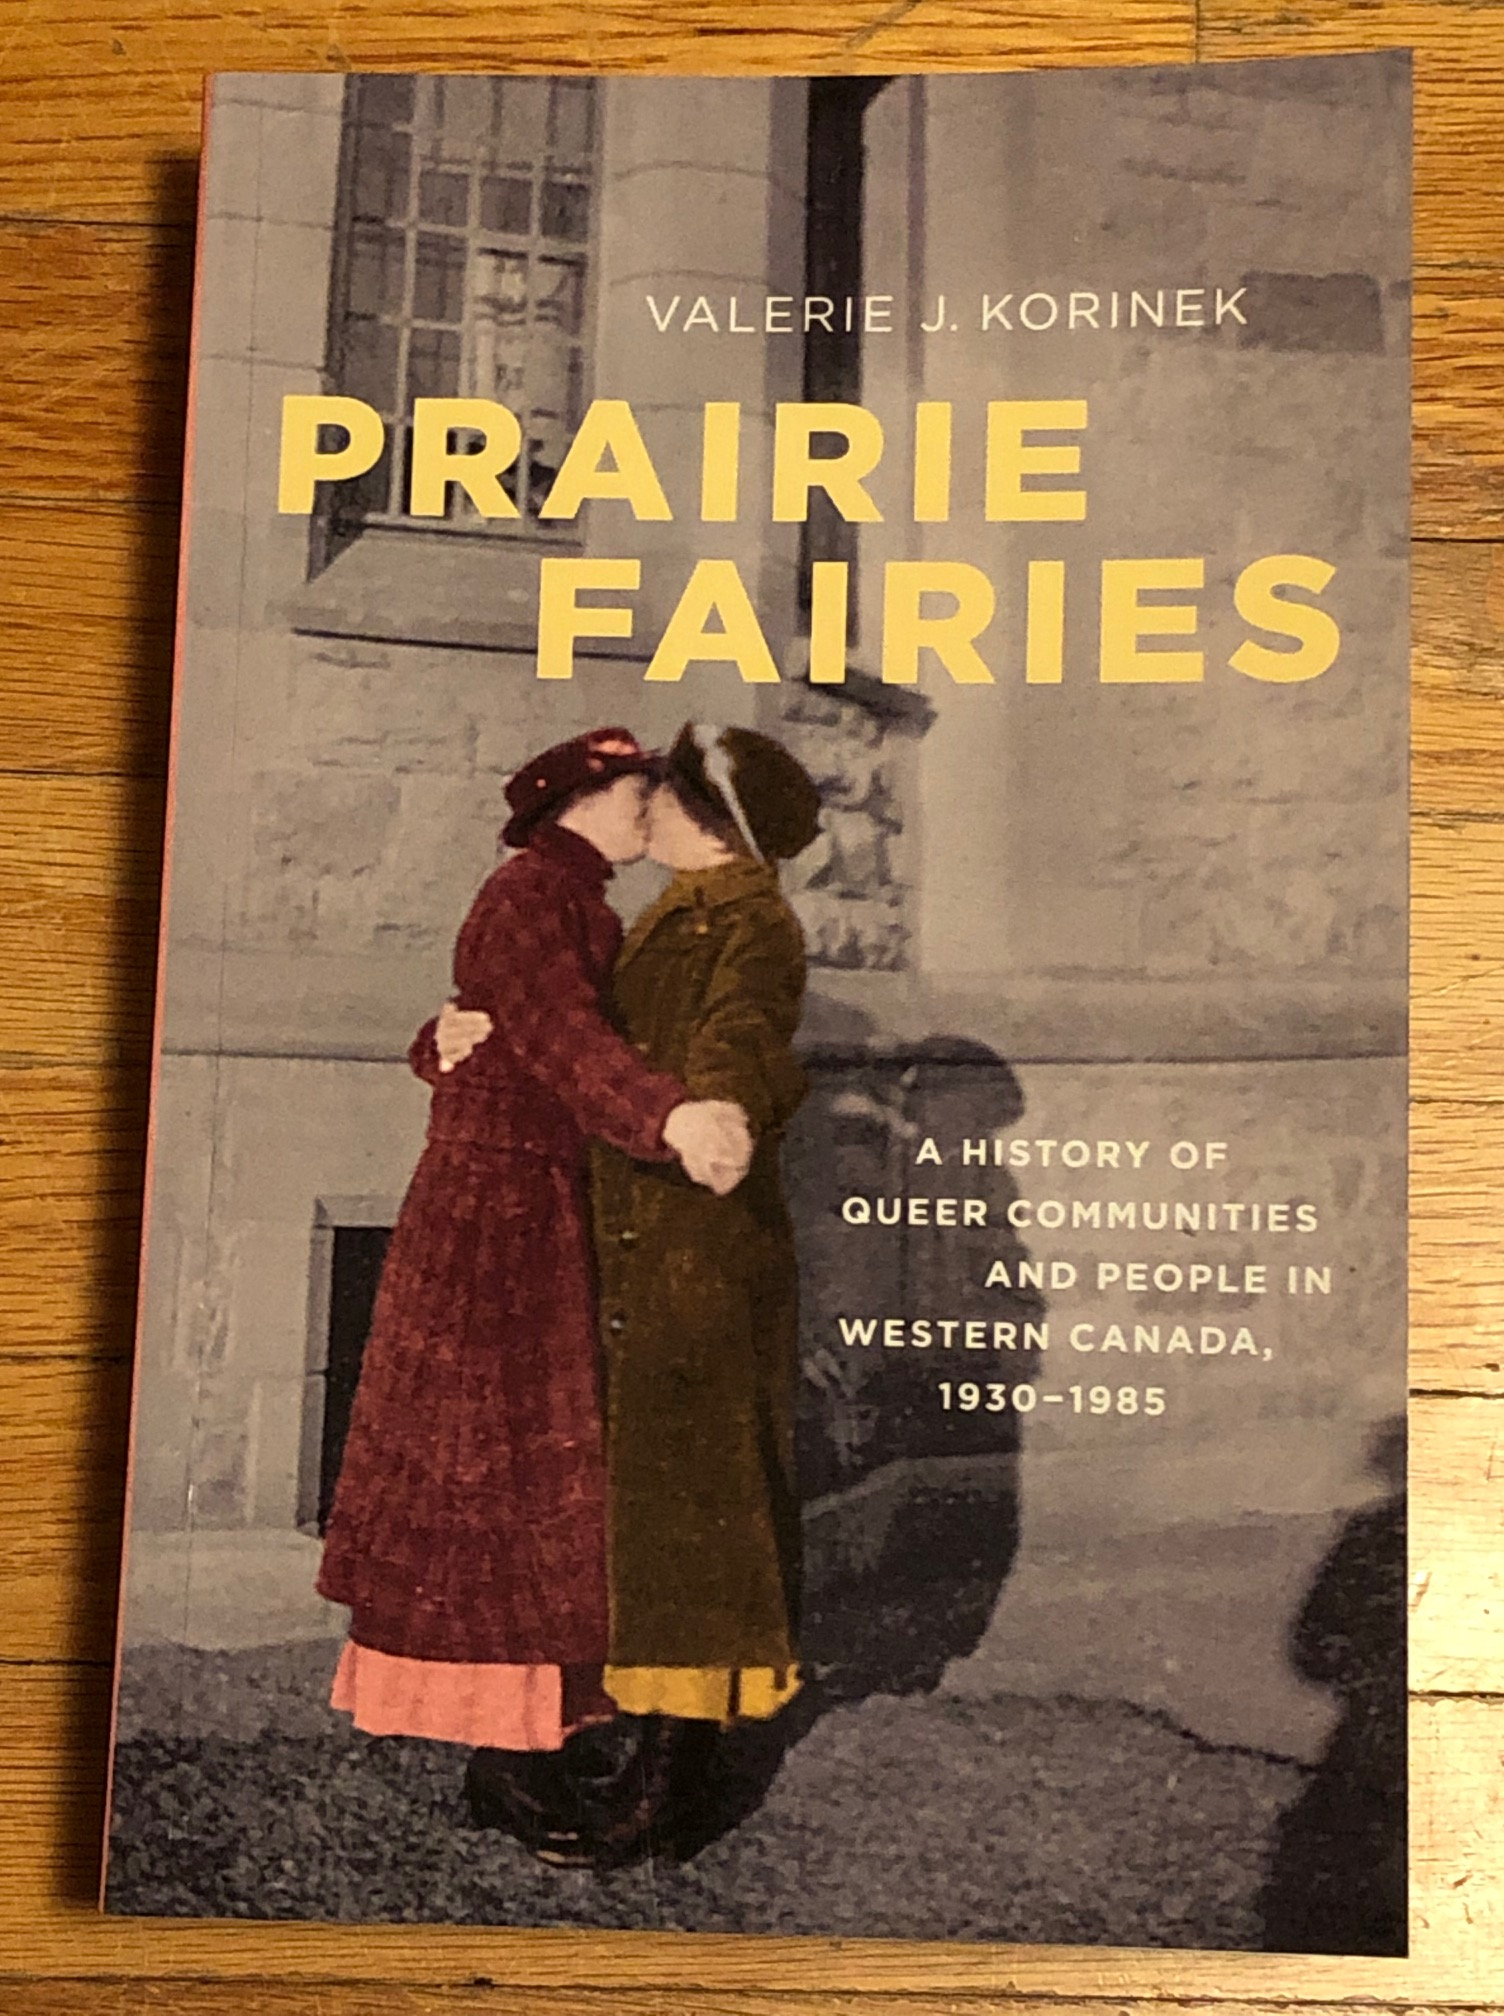 Prairie Fairies: A history of Queer Communities and People in Western Canada, 1930 - 1985 by Valerie J. Korinek